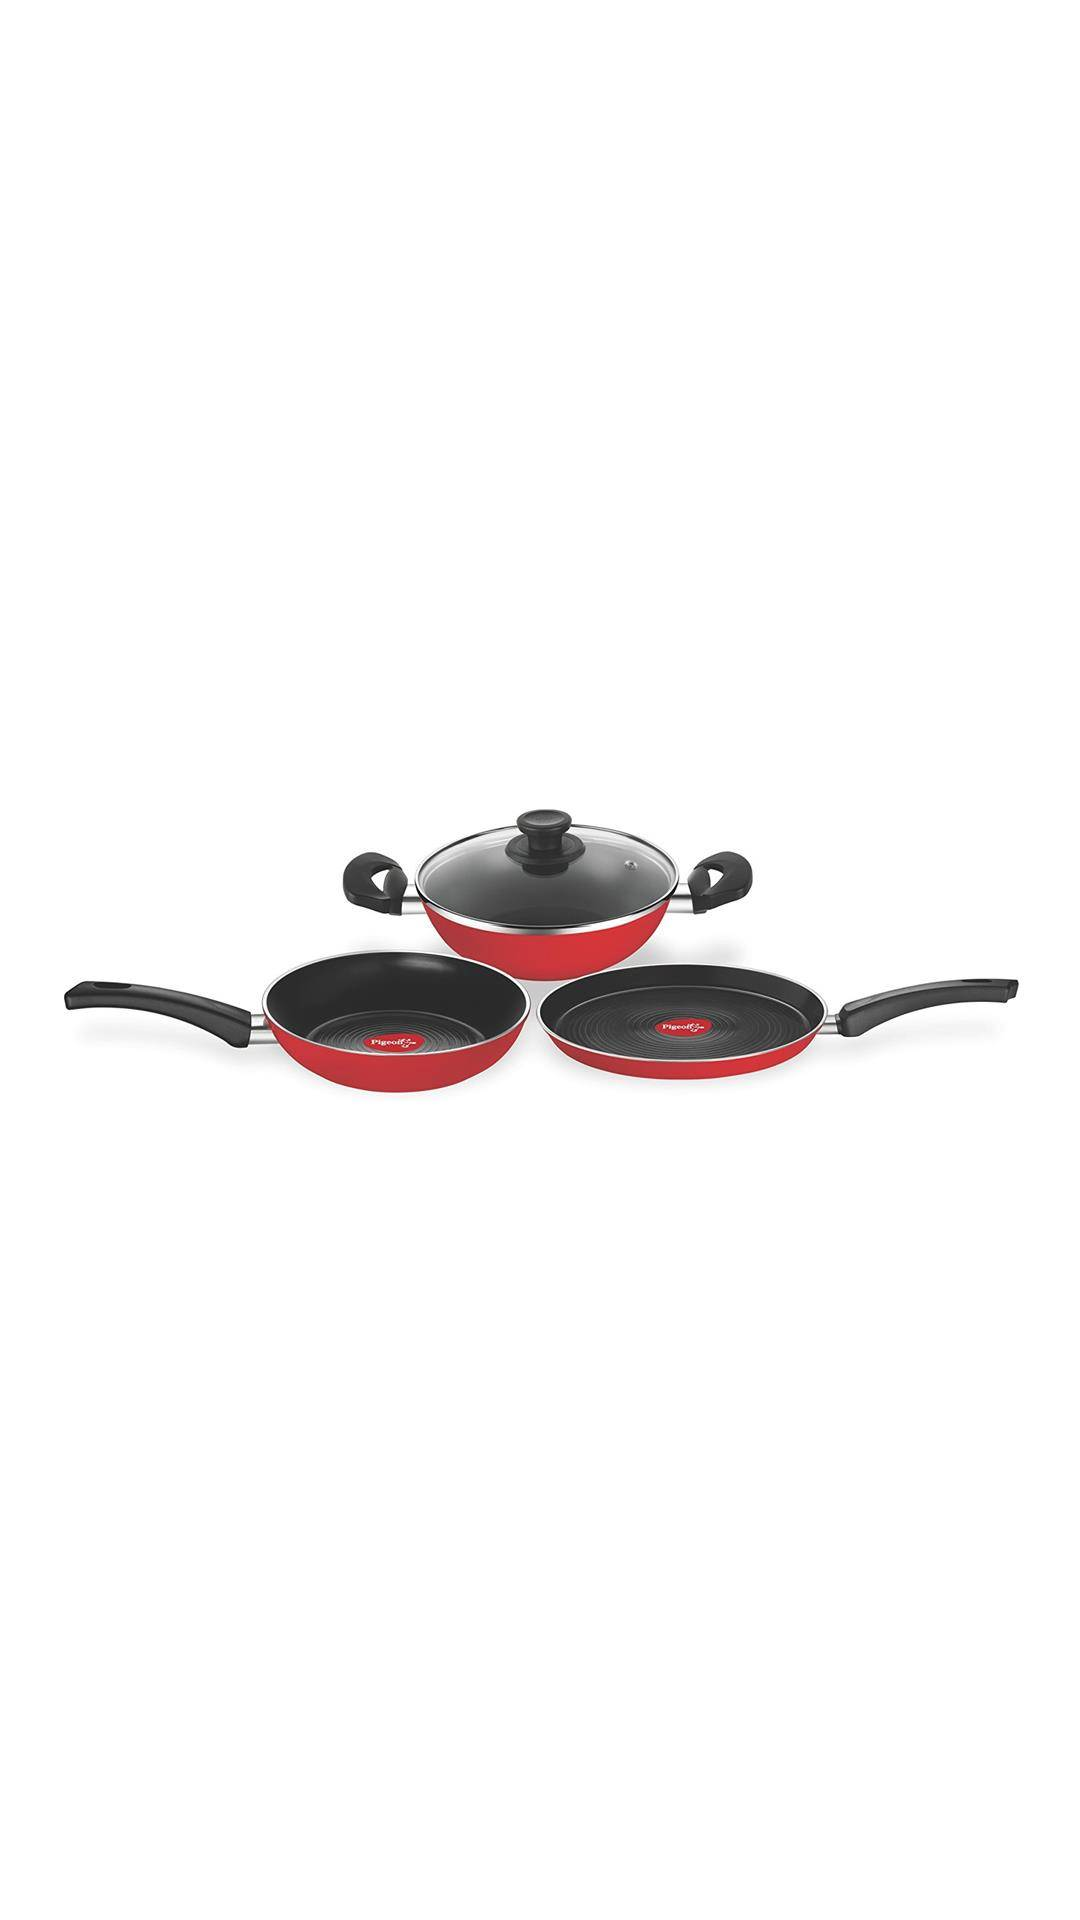 Pigeon Carlo Induction Base Aluminium Cookware Gift Set, 4-Pieces, Red @ Rs.849